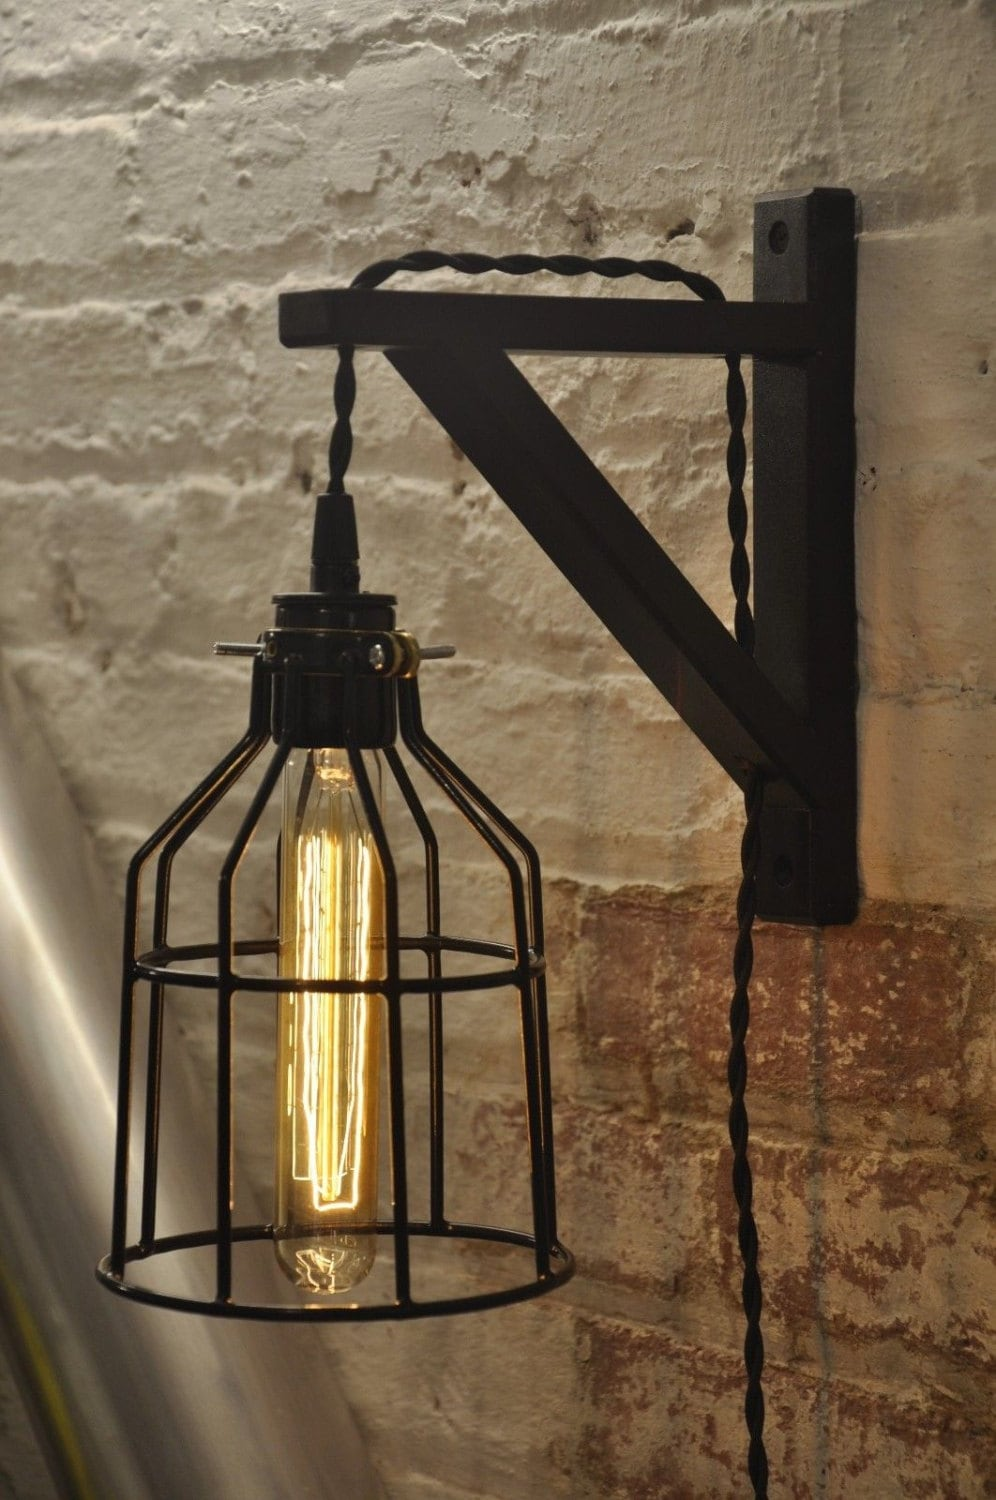 Wall Sconce Cage Lighting : Bulb Guard Wall Sconce Cage Light Lamp Industrial Retro